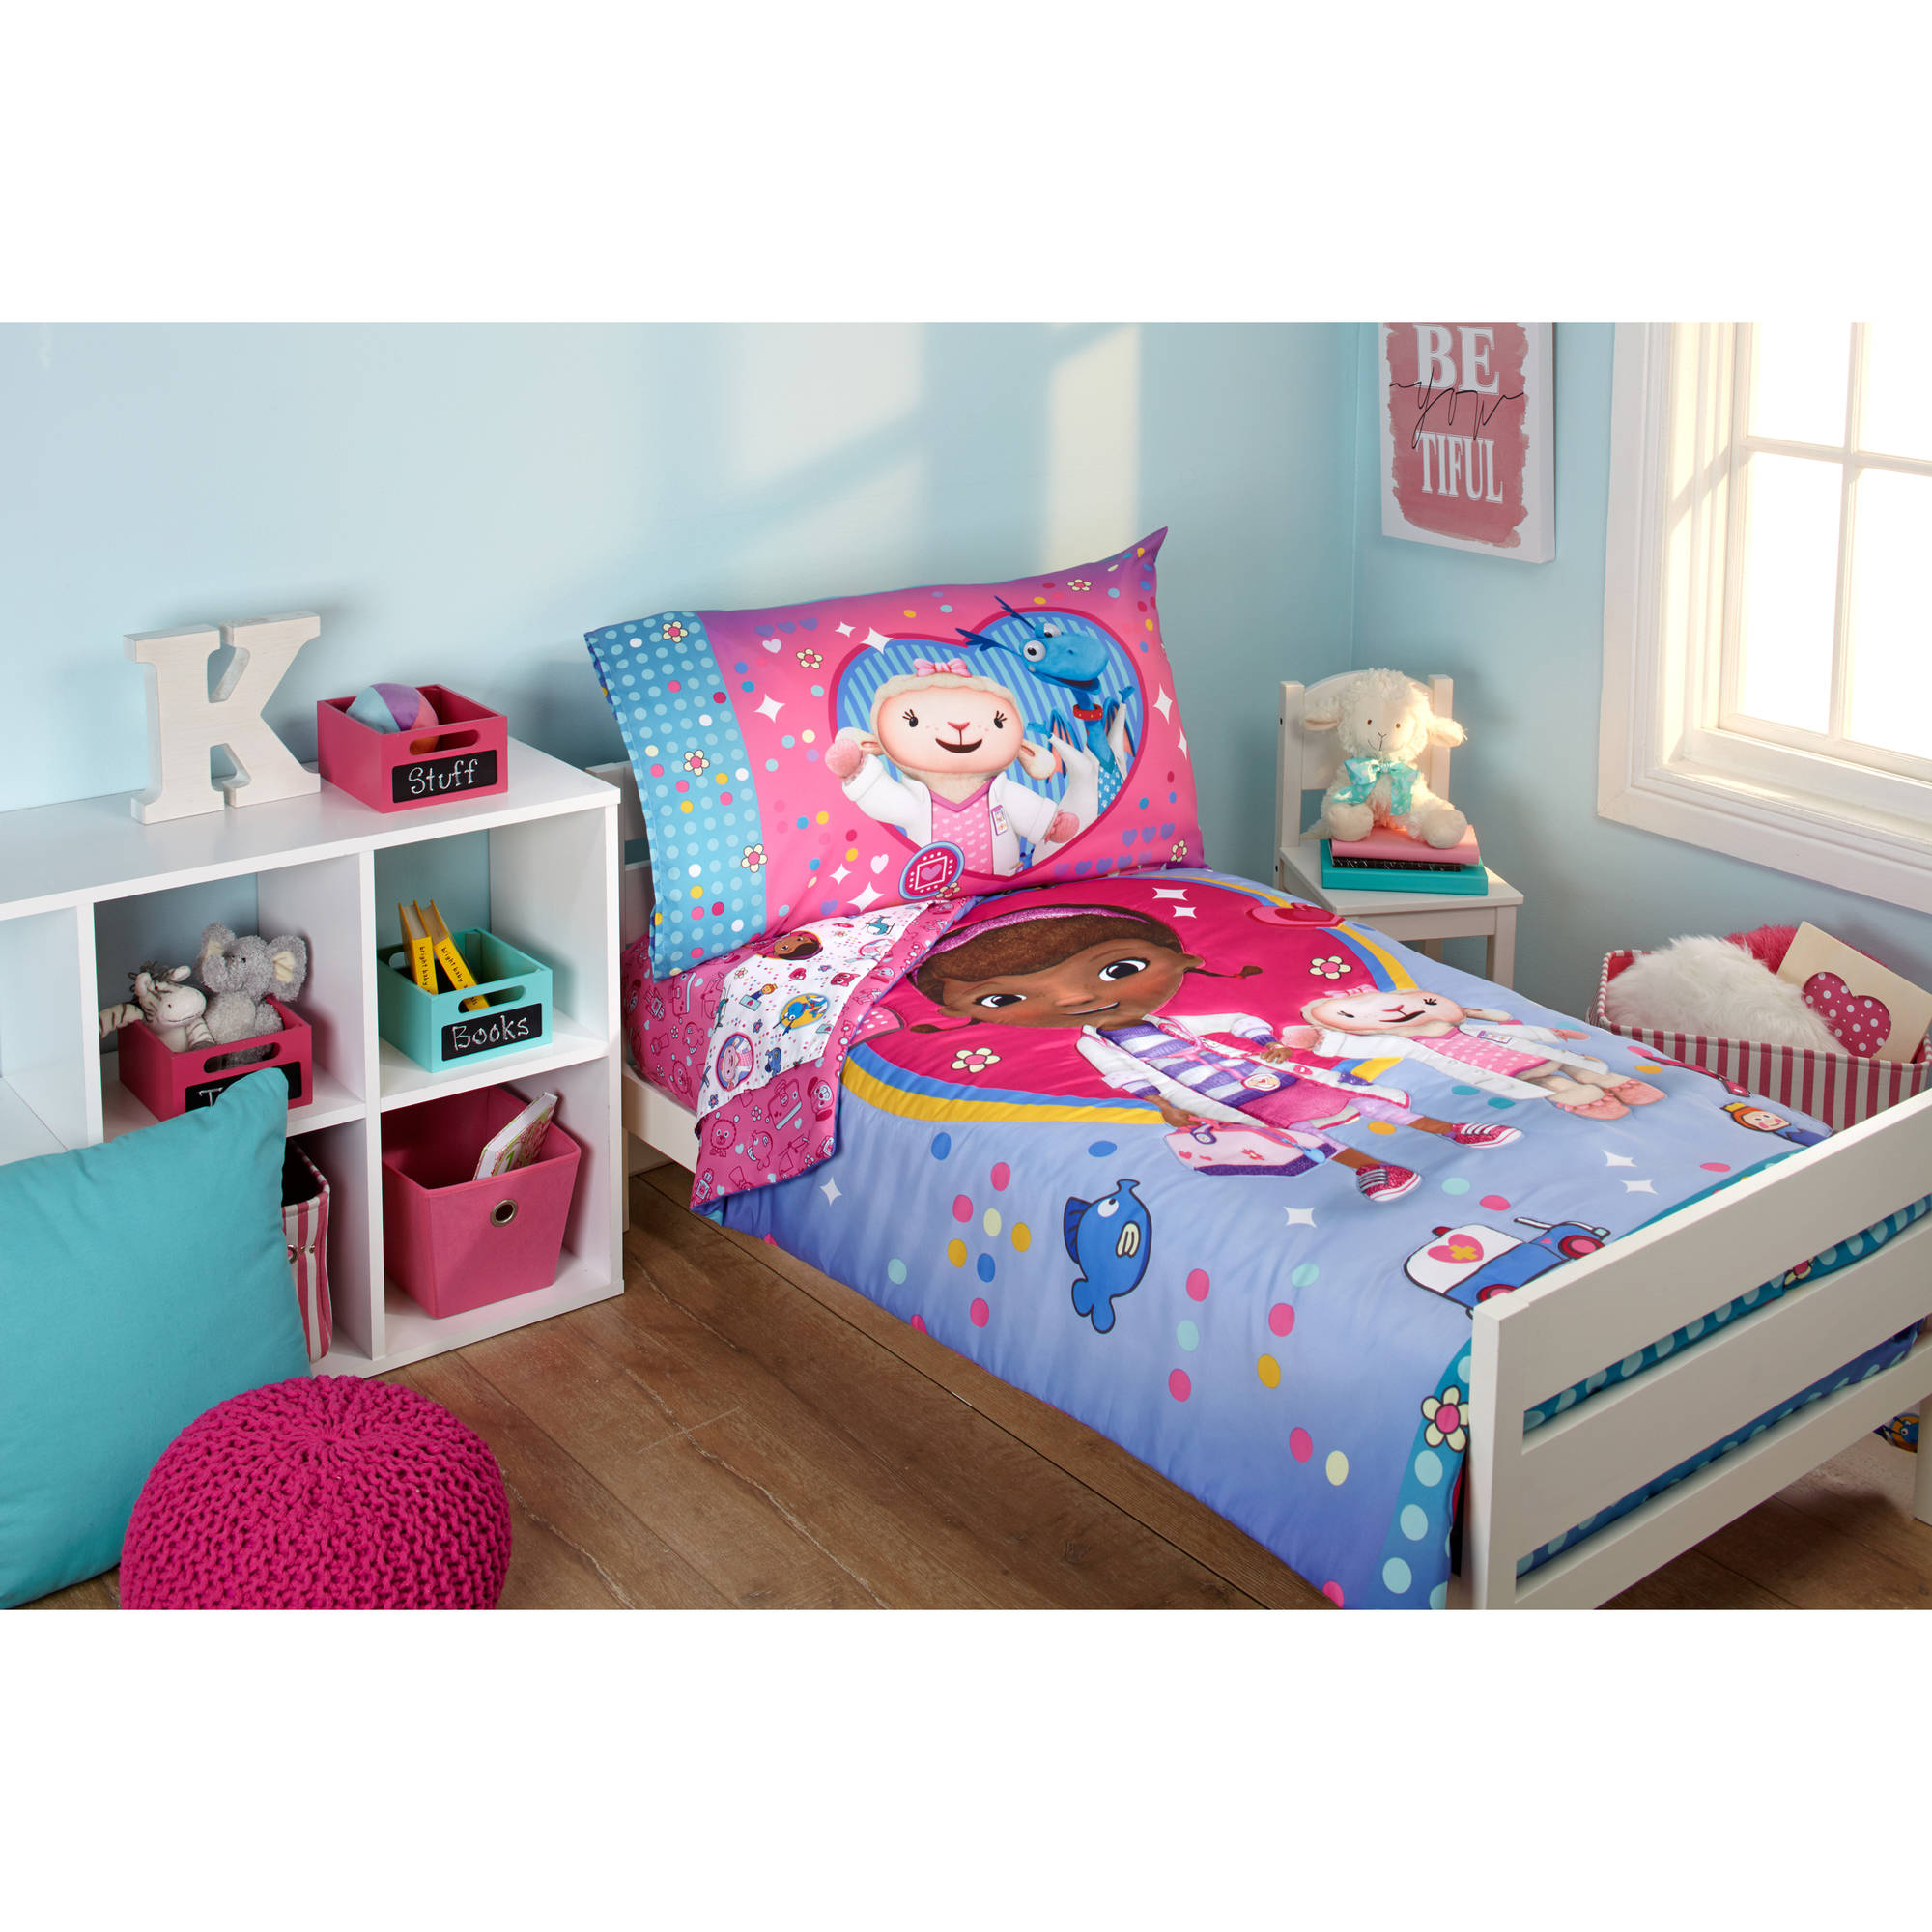 doc mcstuffins bedroom set disney doc mcstuffins doc 4 toddler bedding set 15192